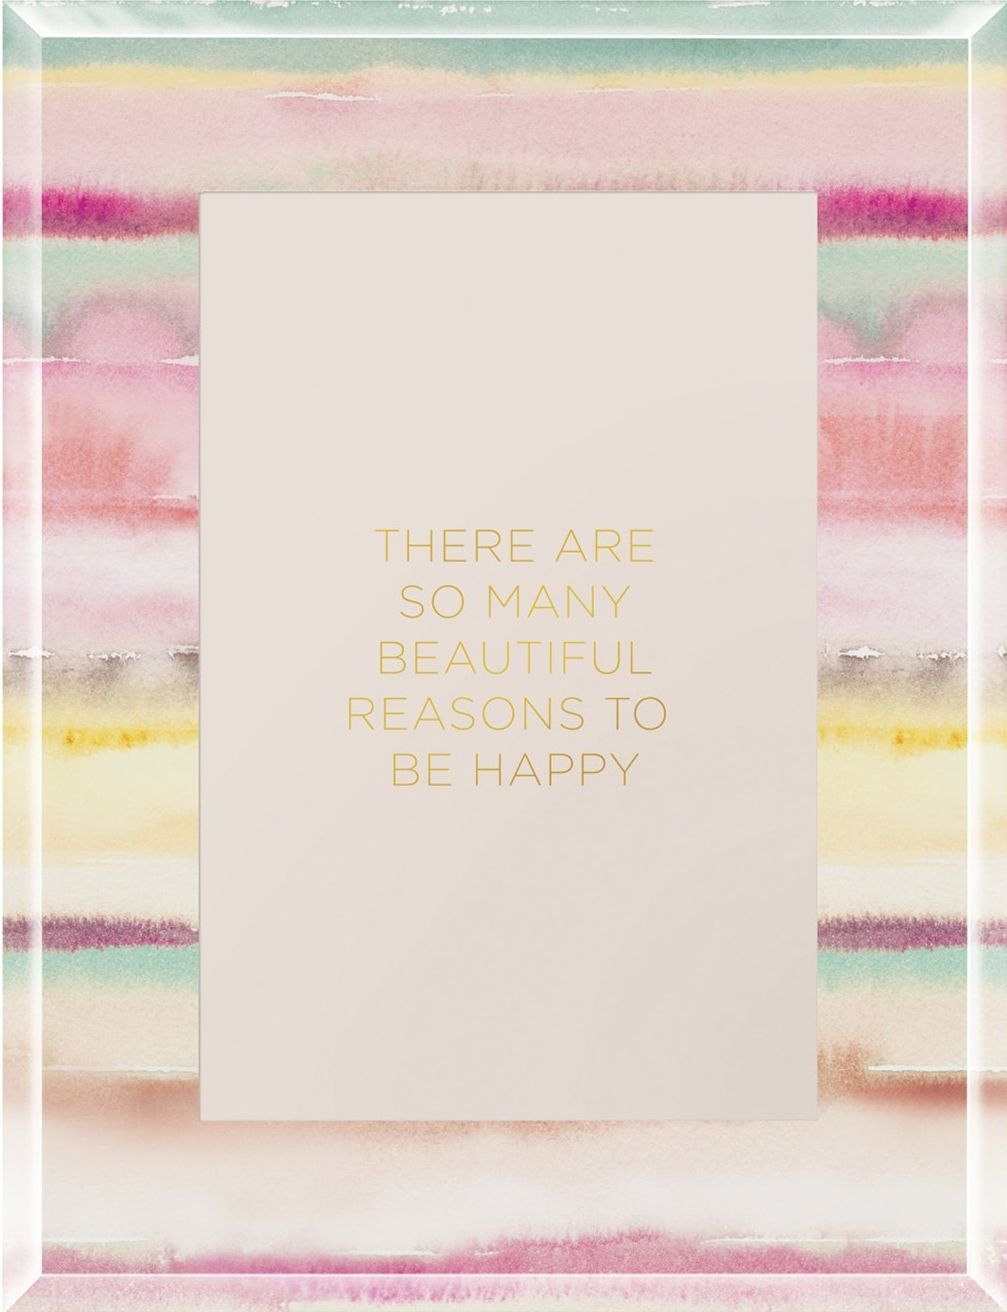 There are so many beautiful reasons to be happy. | Colores matan ...